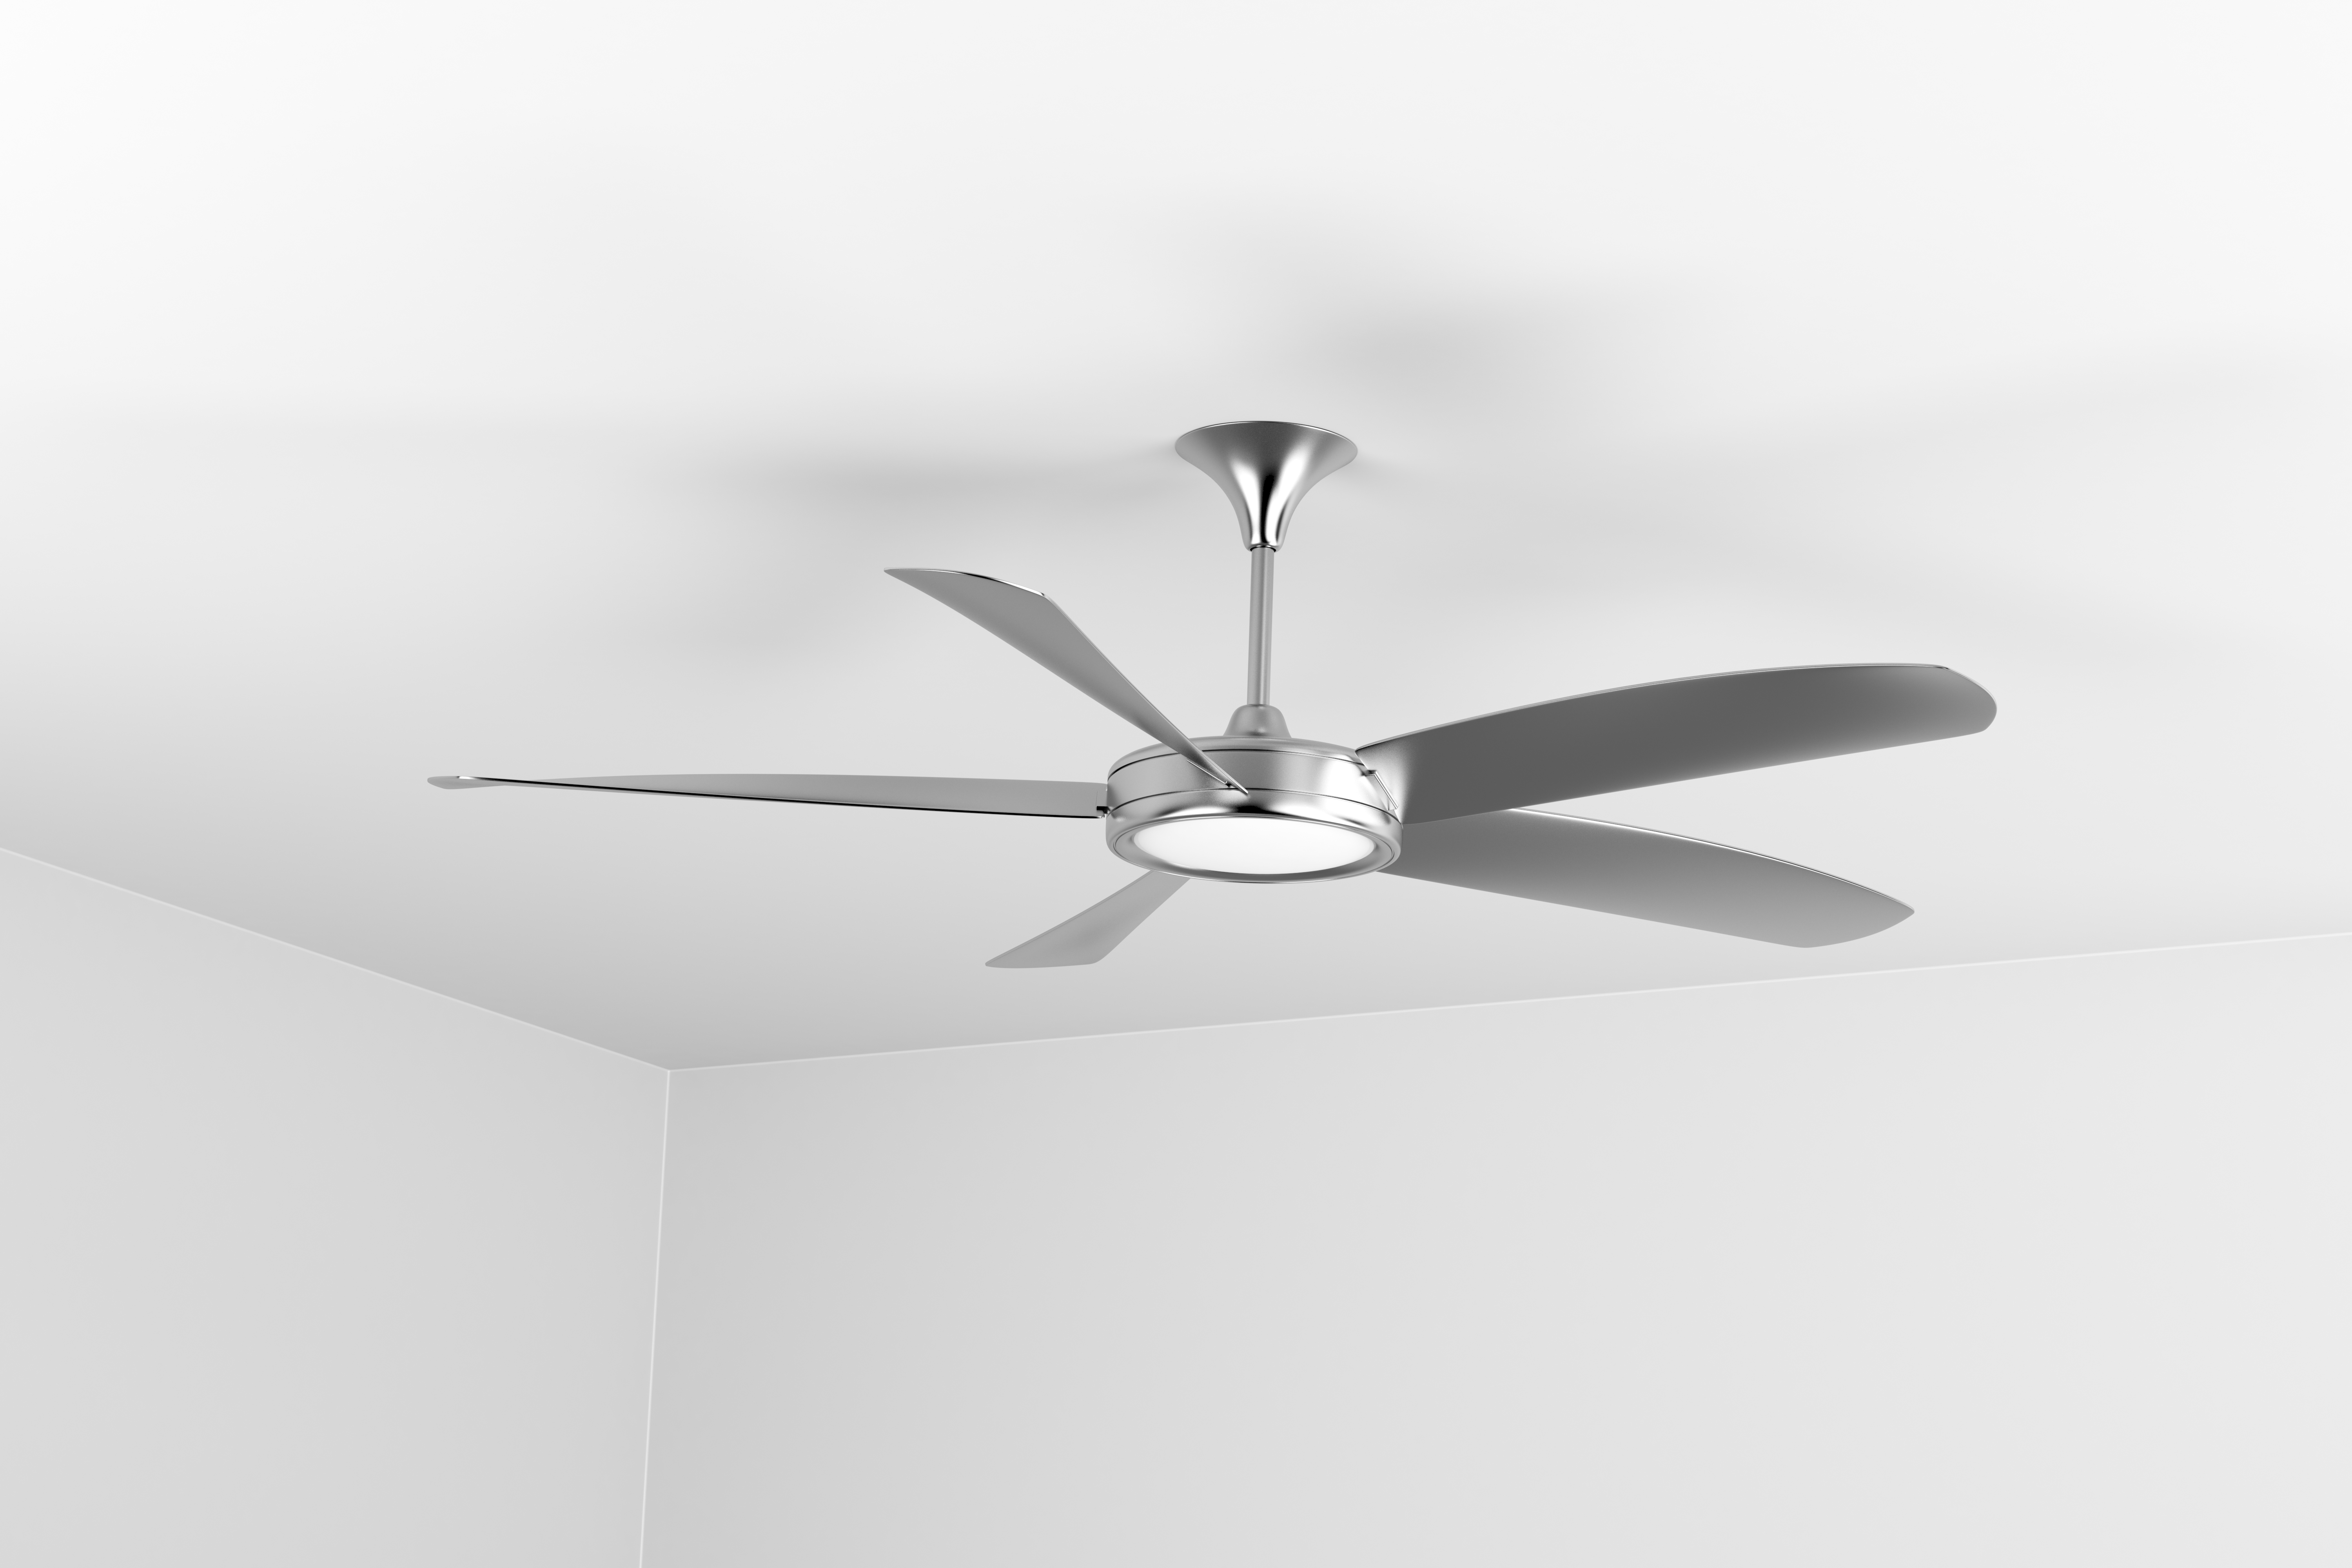 Stupendous How To Install A Ceiling Fan With 2 Switches A Remote Hunker Wiring Cloud Rometaidewilluminateatxorg